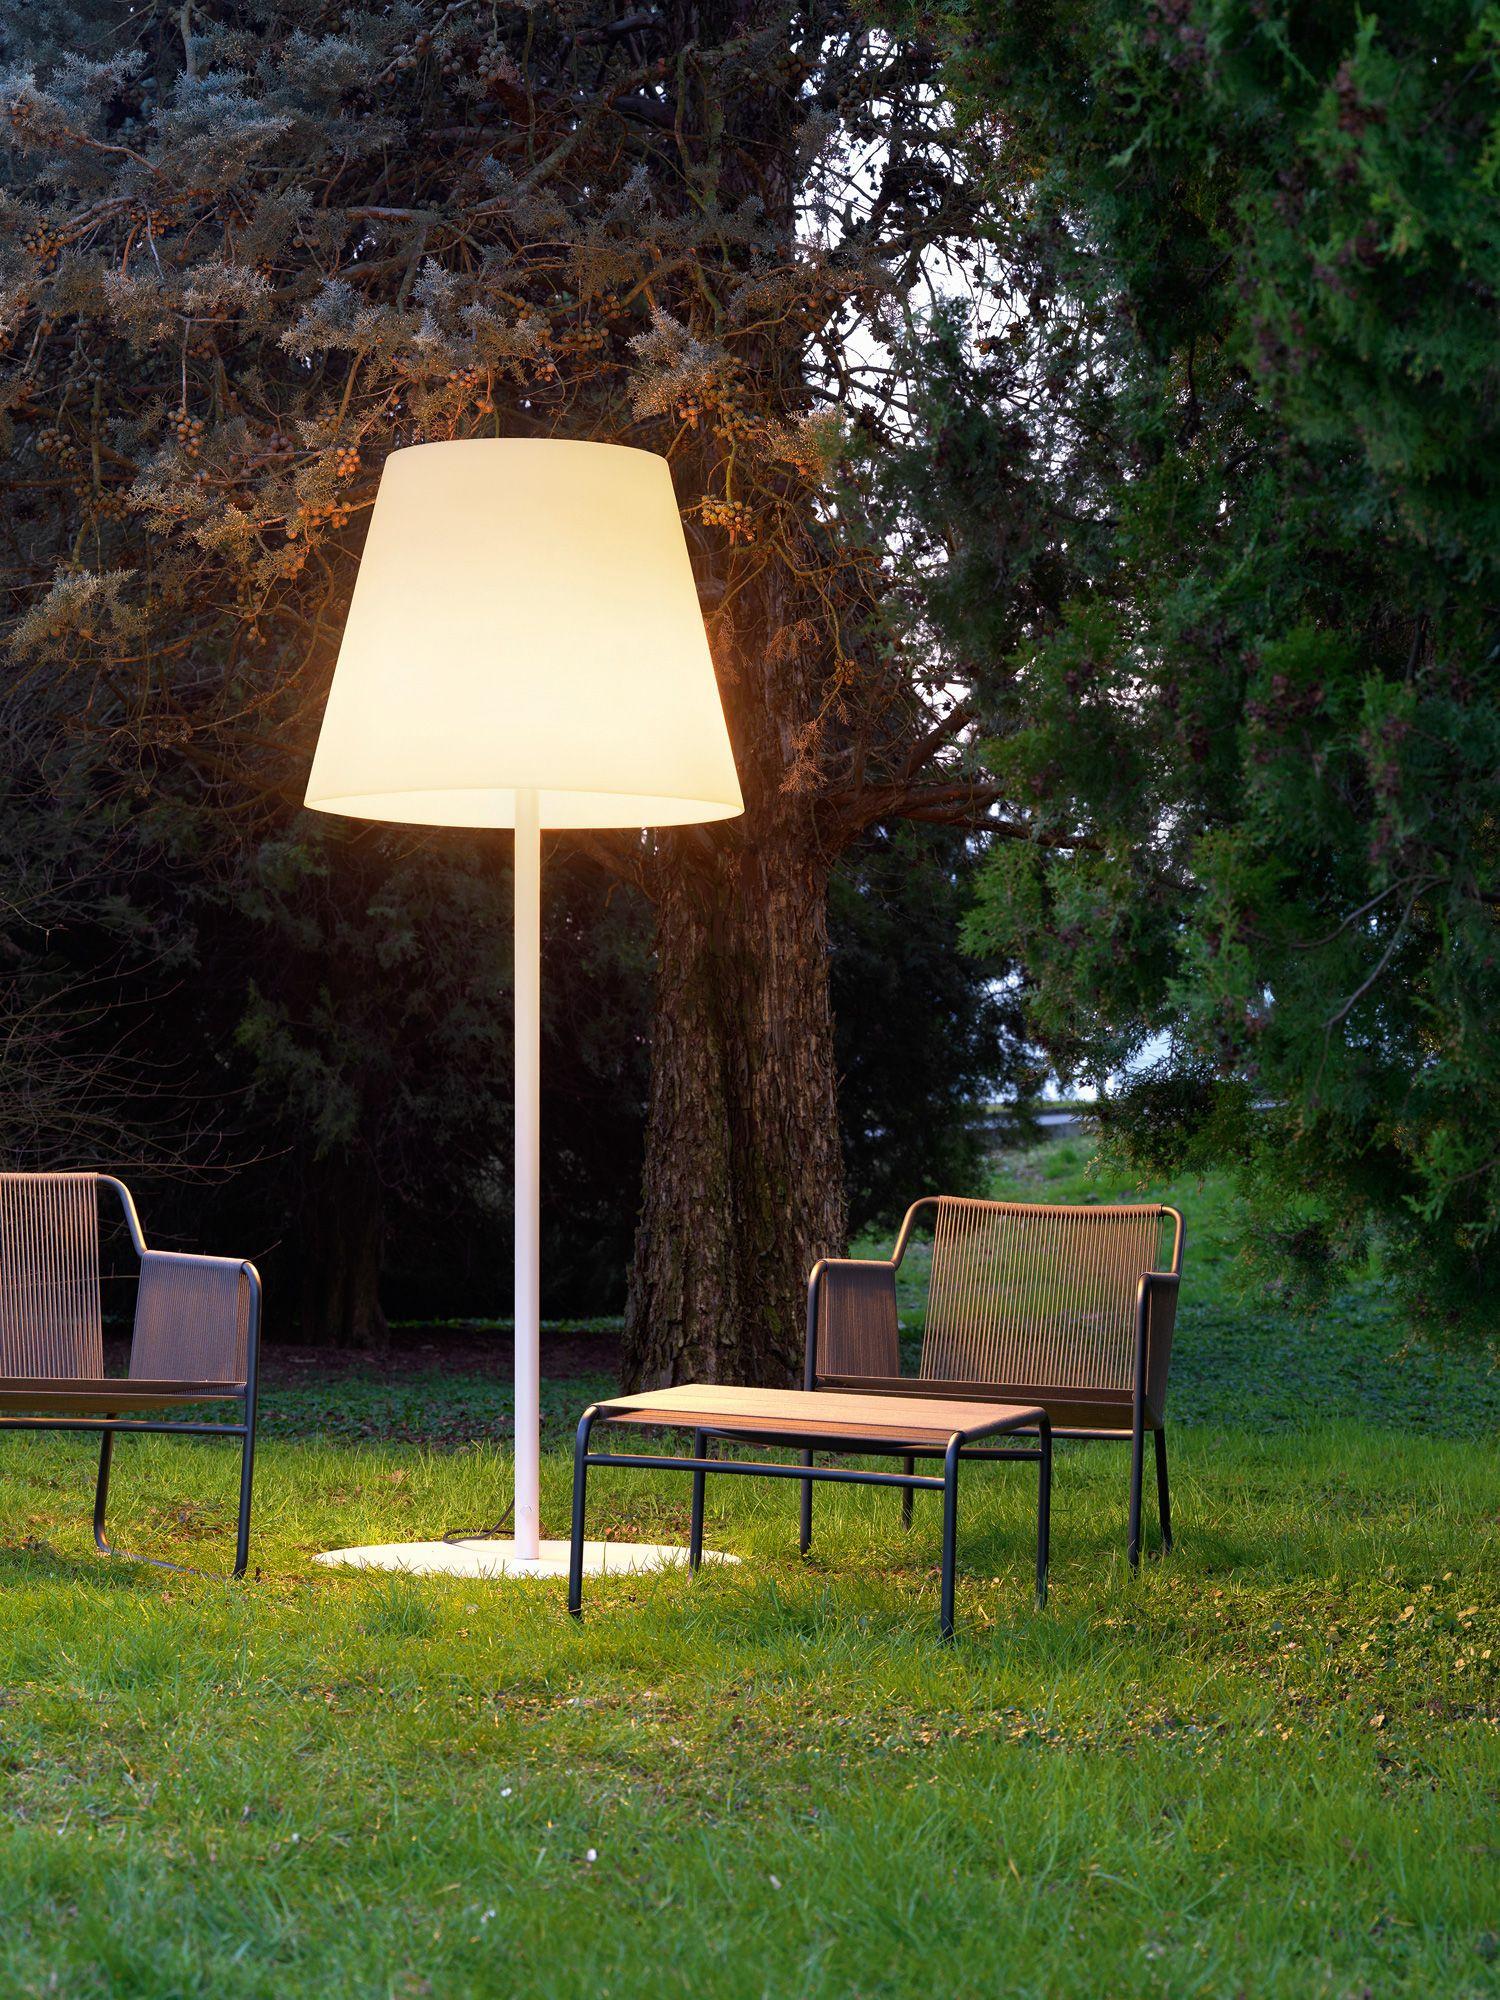 Installation Gallery Outdoor Lighting Amax Outdoor Floor Lamps Outdoor Lamp Outdoor Flooring